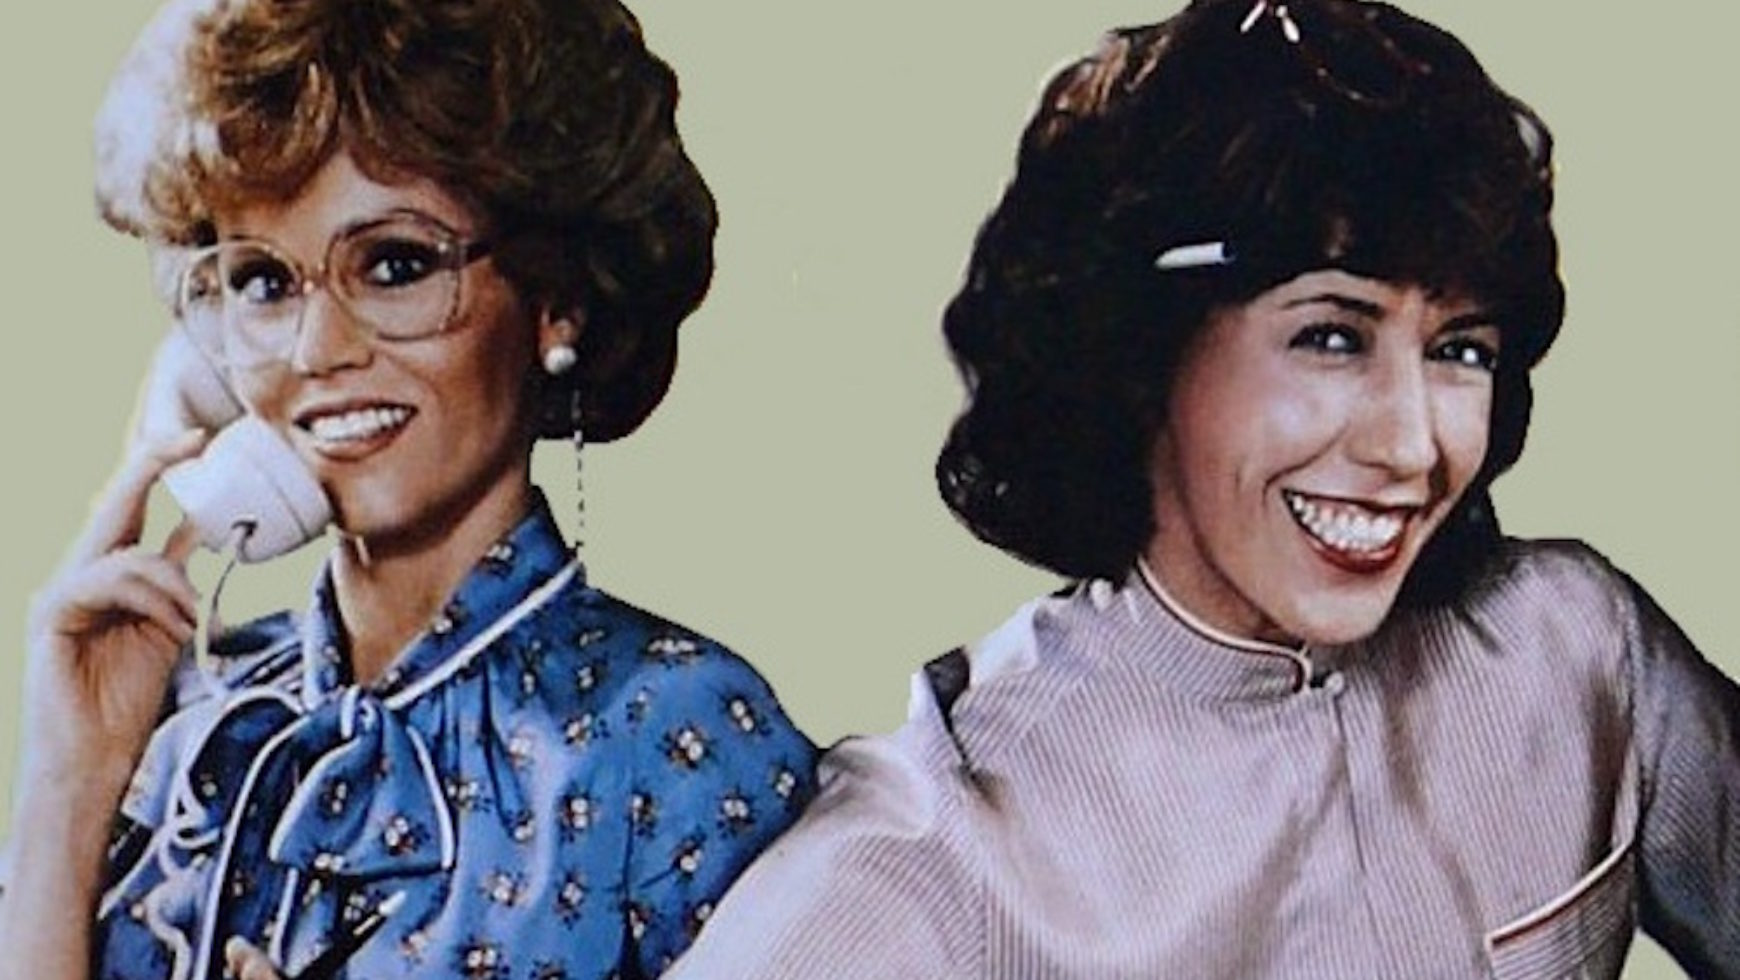 The Power Of Female Friendship According To Jane Fonda and Lily Tomlin